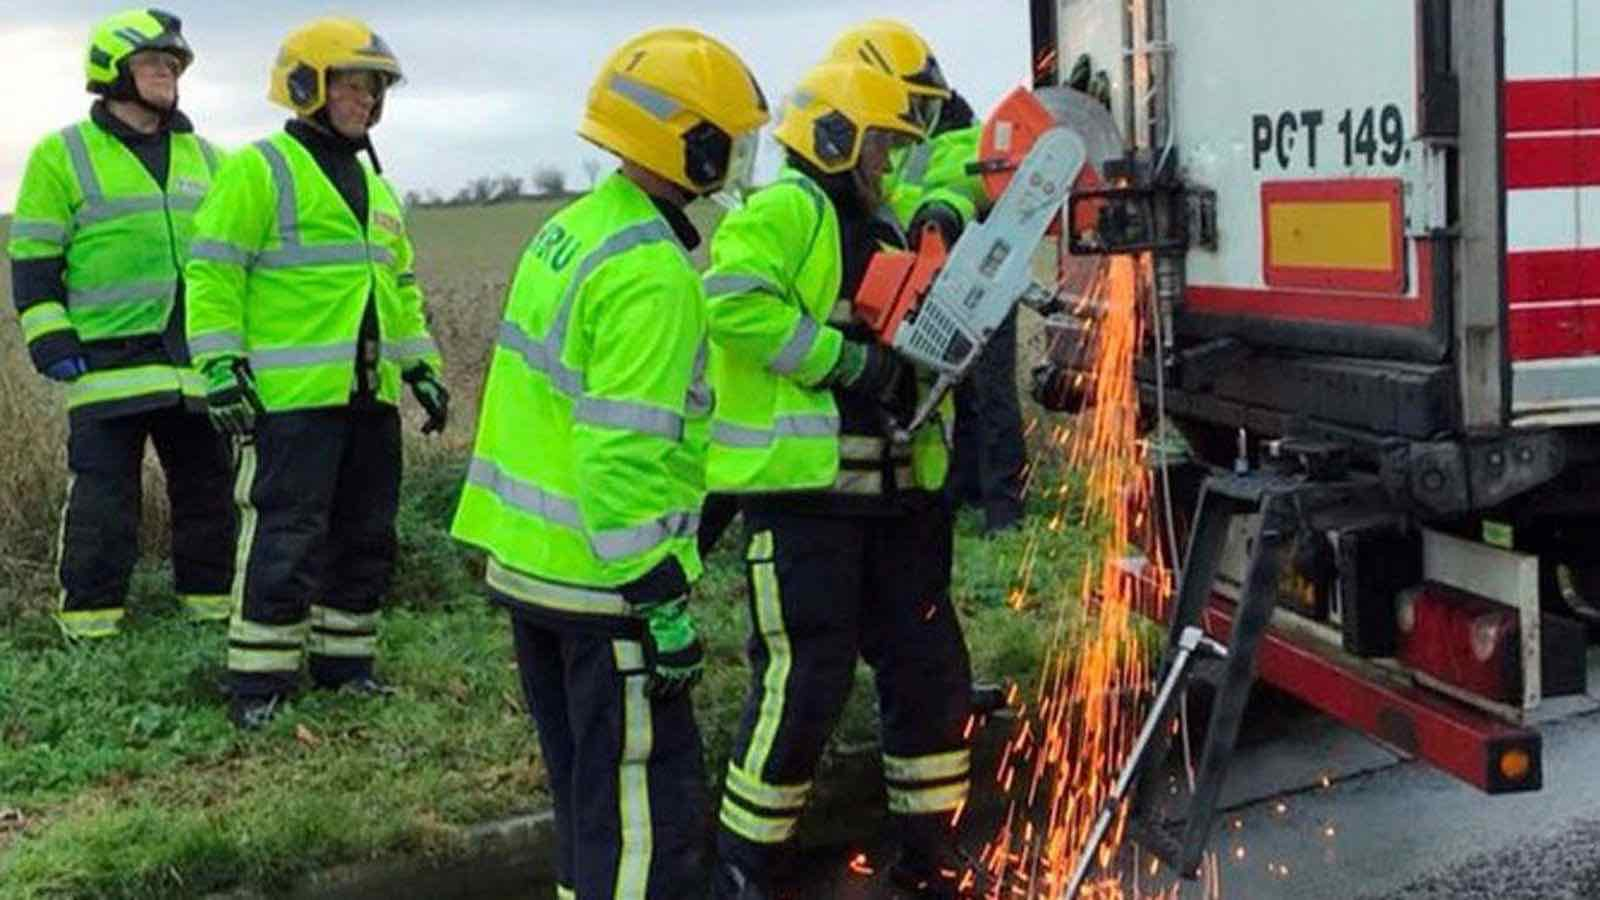 11 people found in lorry freed by firefighters